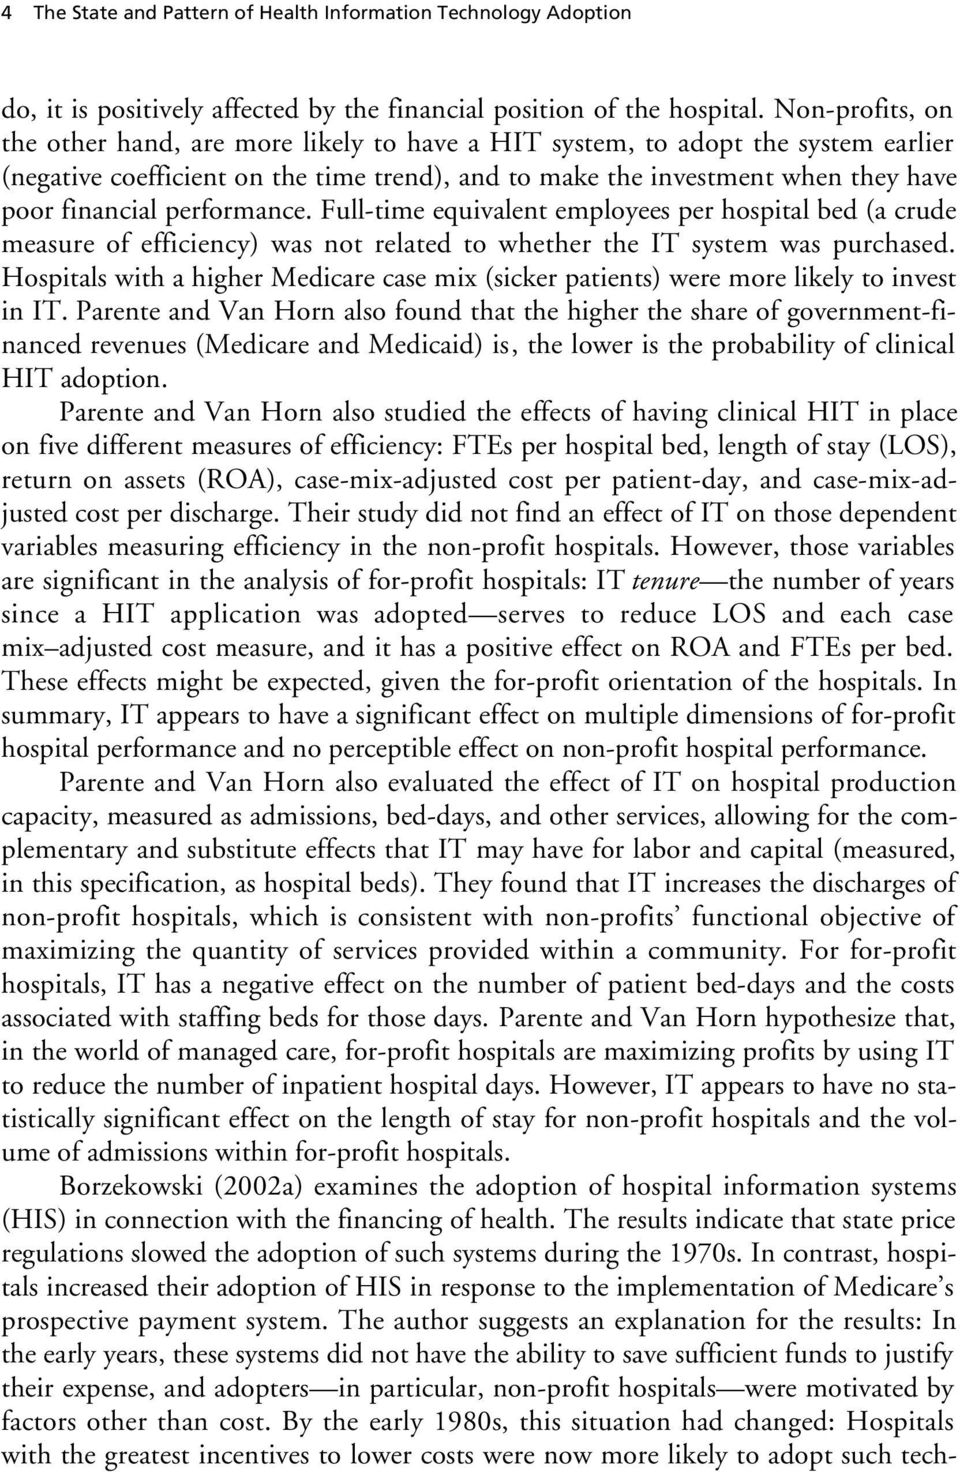 performance. Full-time equivalent employees per hospital bed (a crude measure of efficiency) was not related to whether the IT system was purchased.